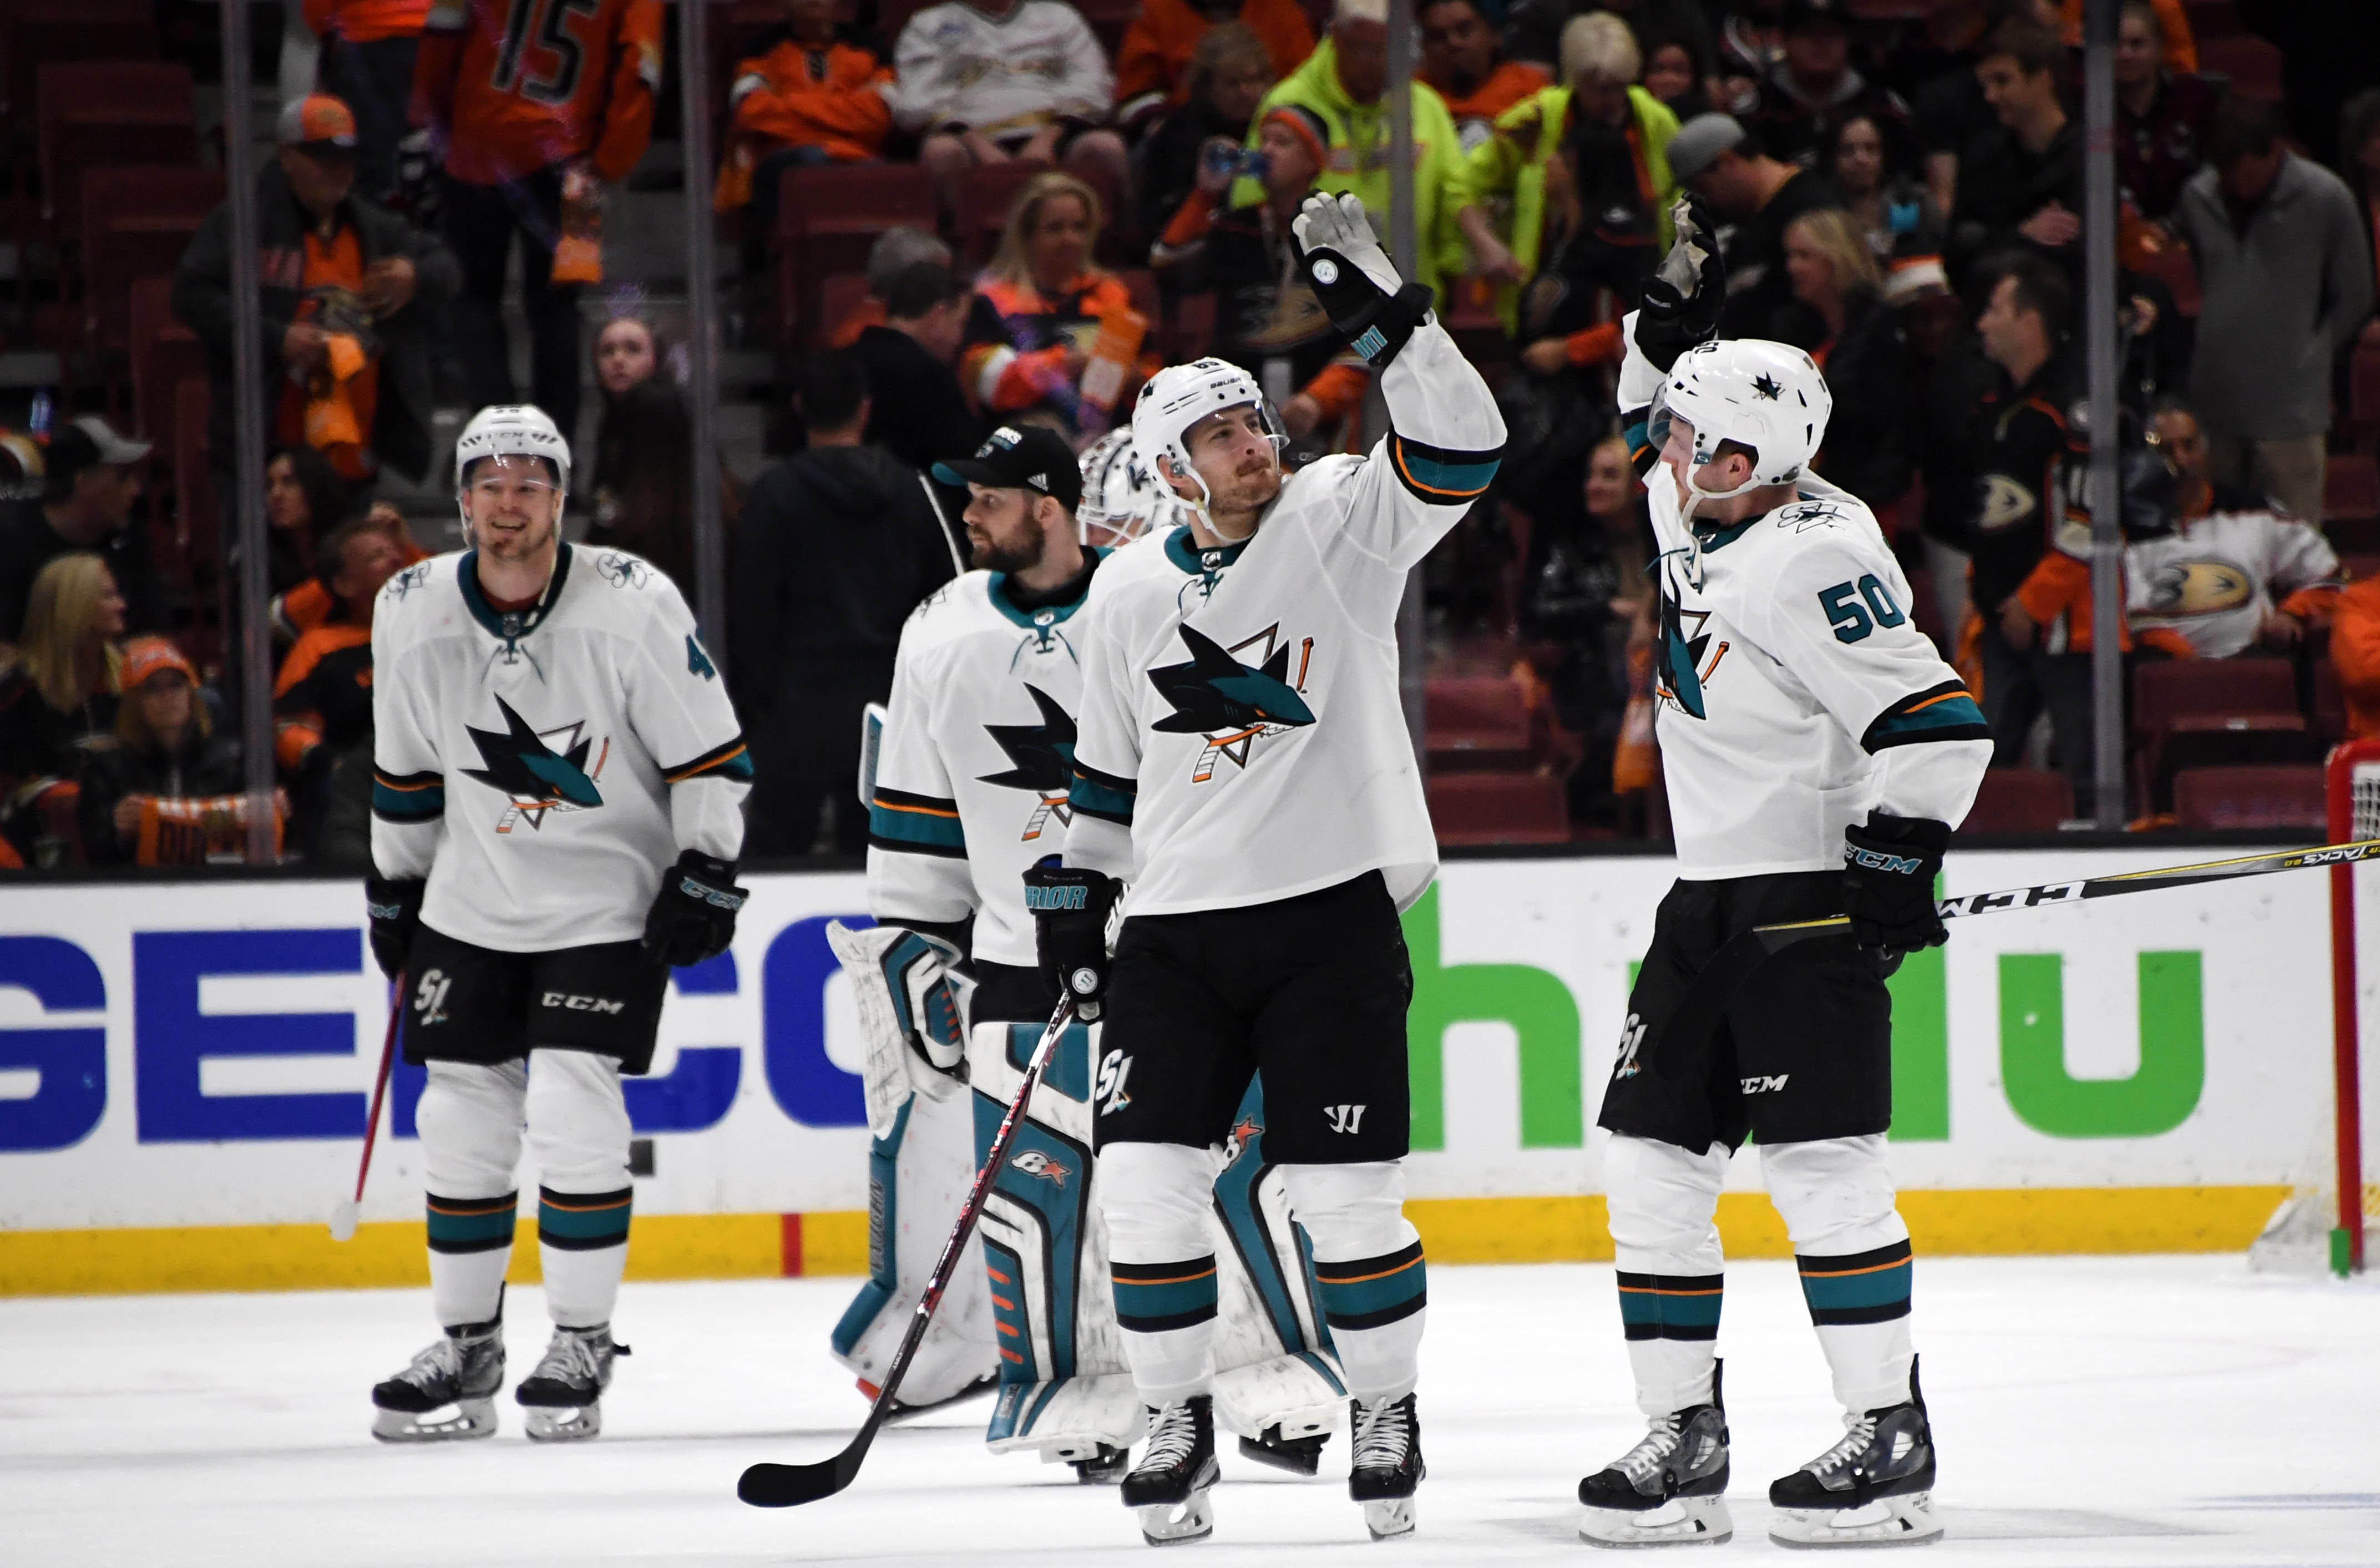 Apr 14, 2018; Anaheim, CA, USA; San Jose Sharks center Melker Karlsson  (68) and center Chris Tierney (50) celebrate after game two of the first  round of the 2018 Stanley Cup Playoffs against the Anaheim Ducks at  Honda Center. The Sharks defeated the Du